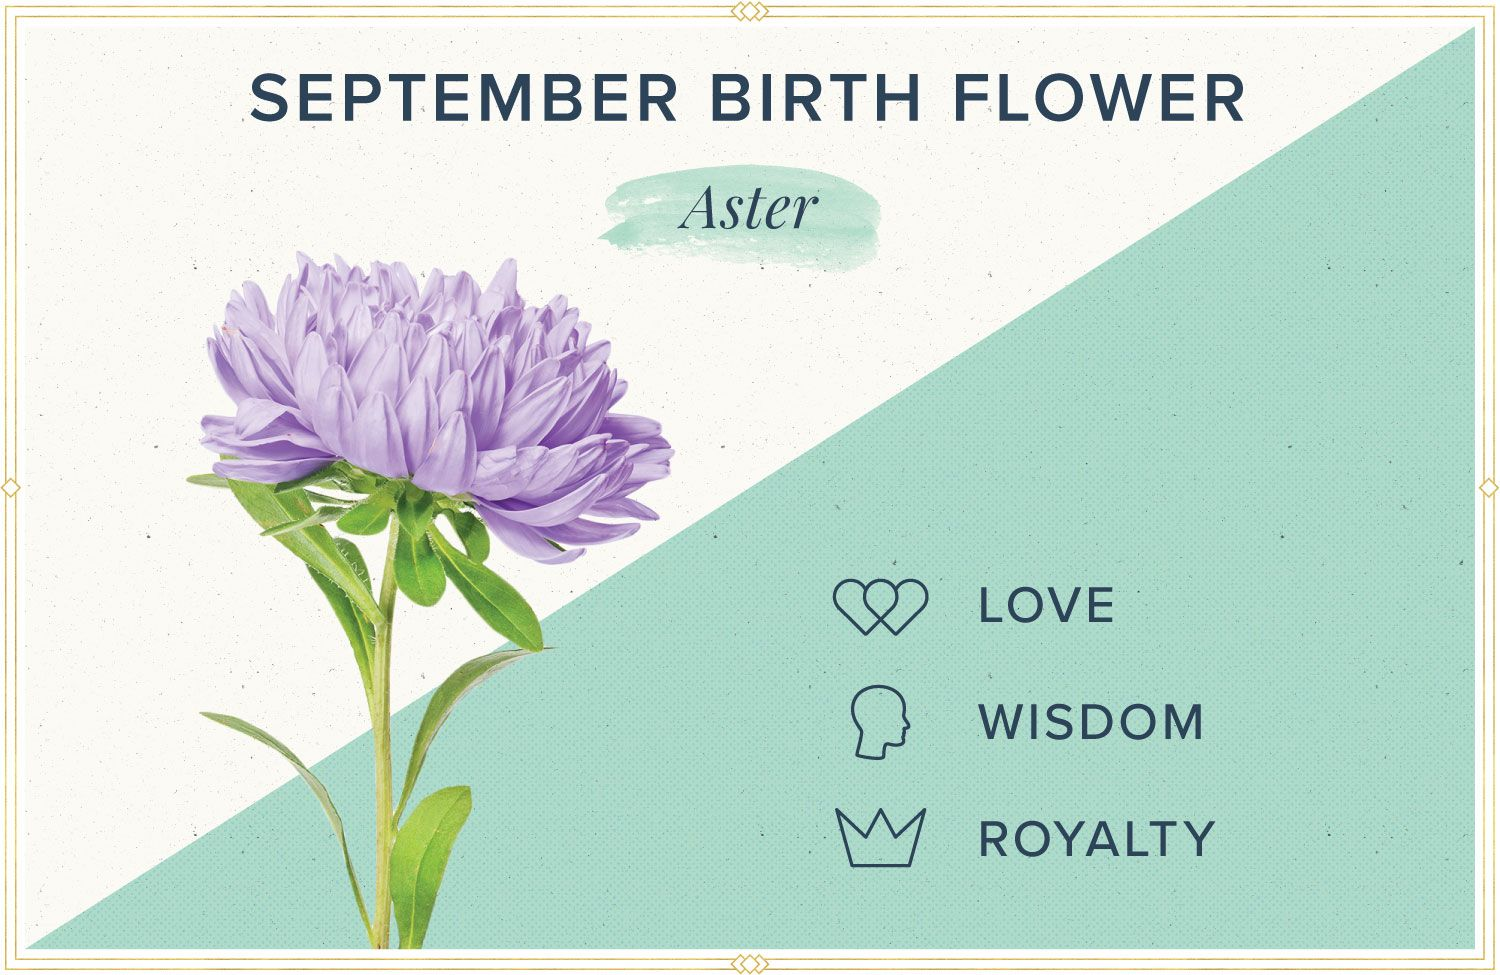 september birth month flower aster meaning